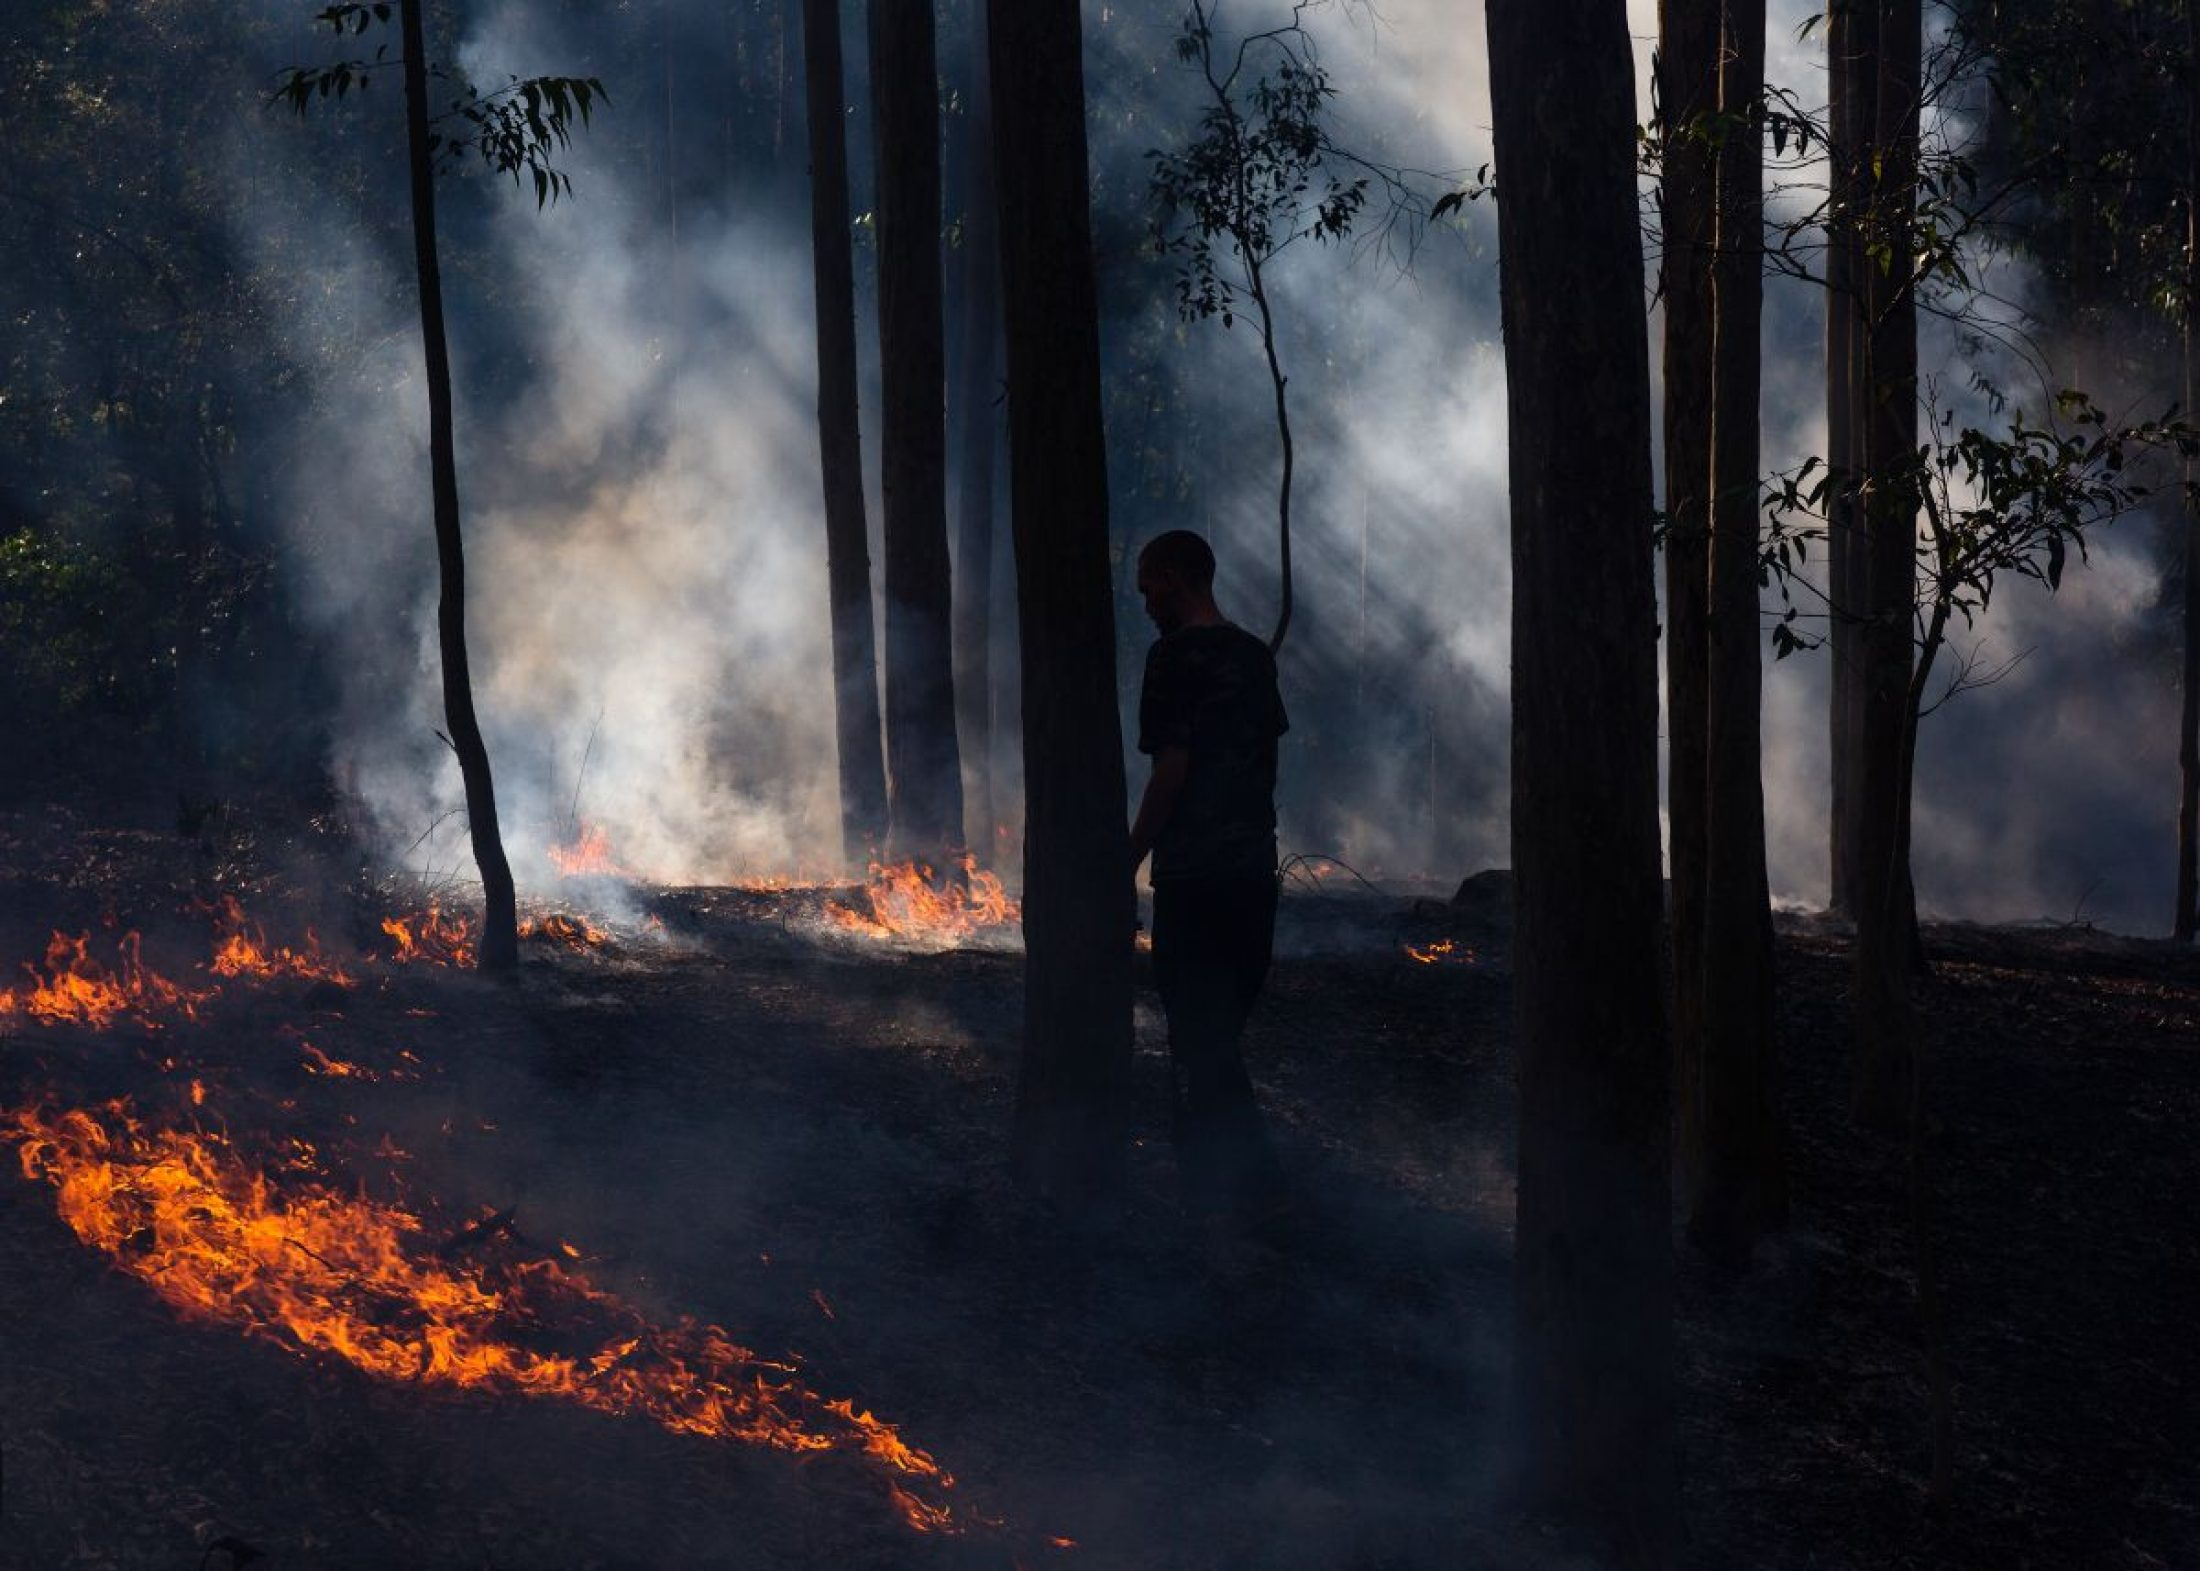 Walking with a cool fire, which is an indigenous fire management practice, is Yuin man Jacob Morris.